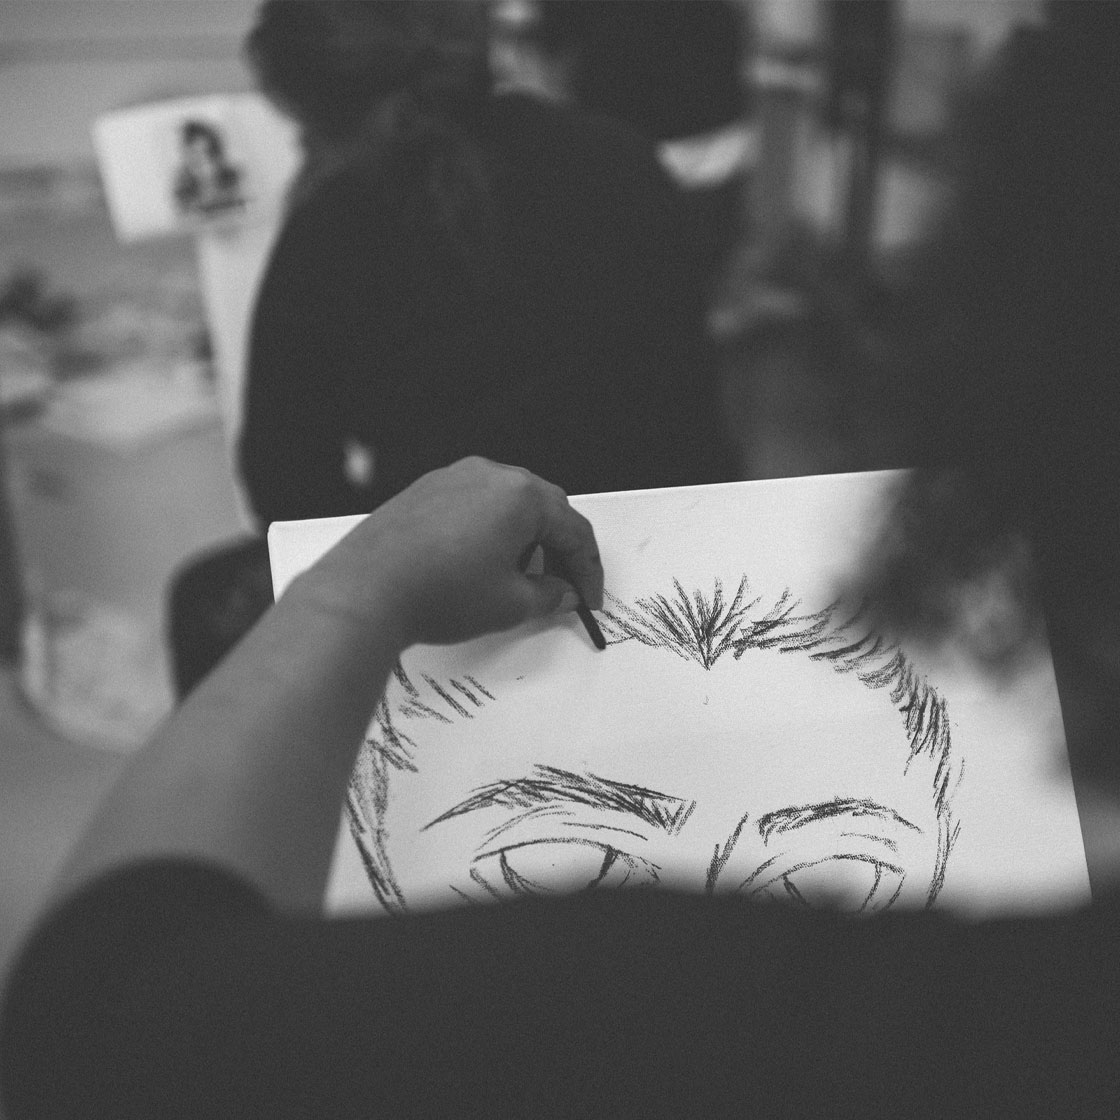 Someone starting a drawing of a charcoal portrait